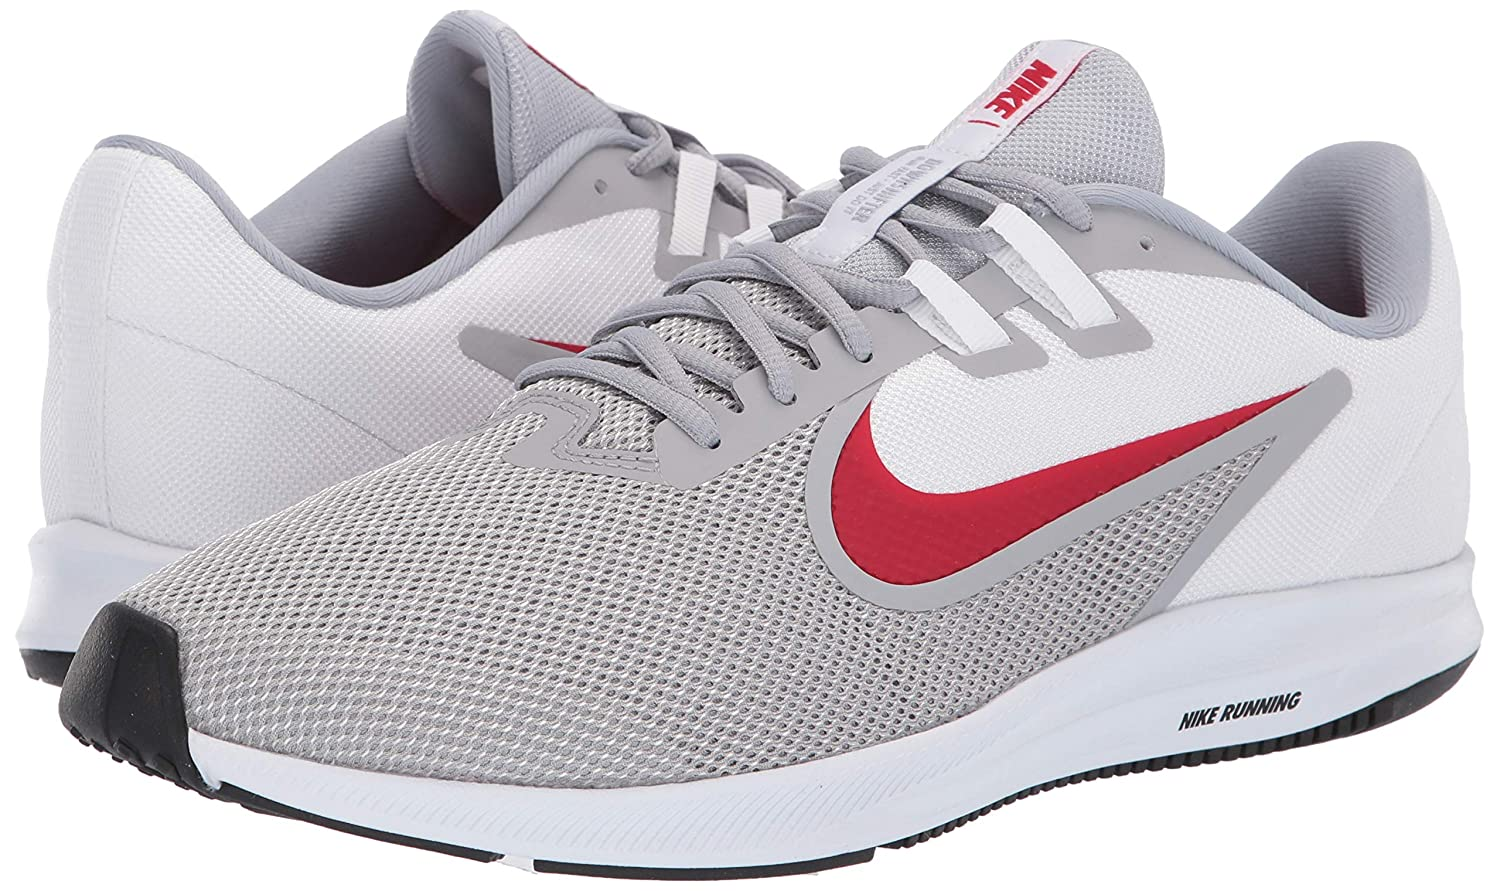 purchase cheap ec4e9 73a95 Amazon.com   Nike Men s Downshifter 9 Sneaker, Wolf Grey University red -  White, 11.5 Regular US   Shoes